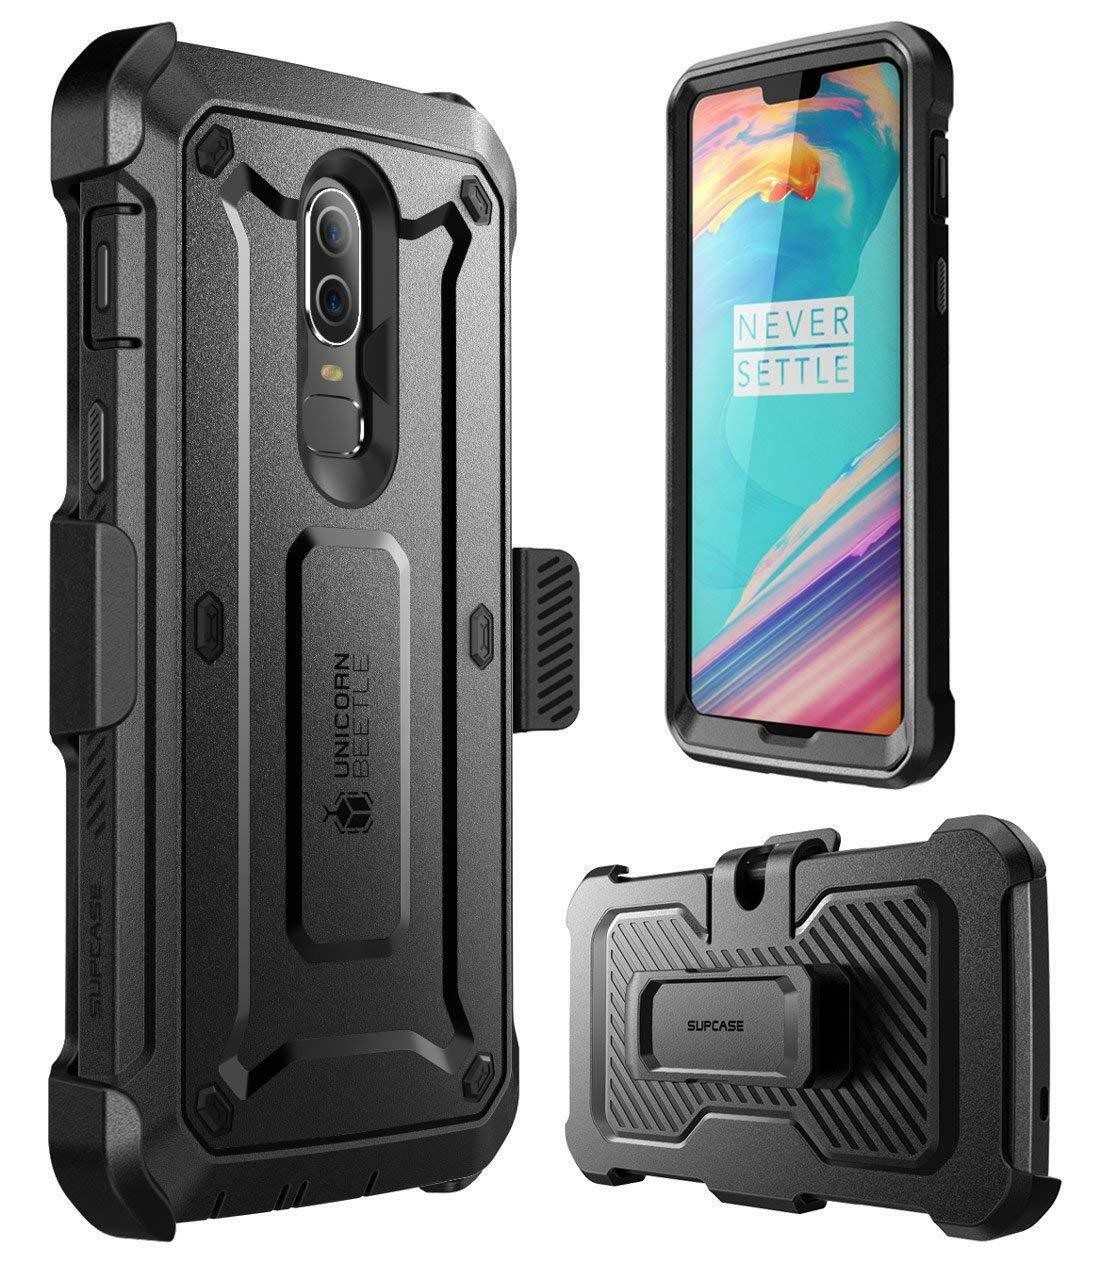 Dedicated Supcase Oneplus 6 Case Full-body Rugged Drop-proof Case Cases, Covers & Skins